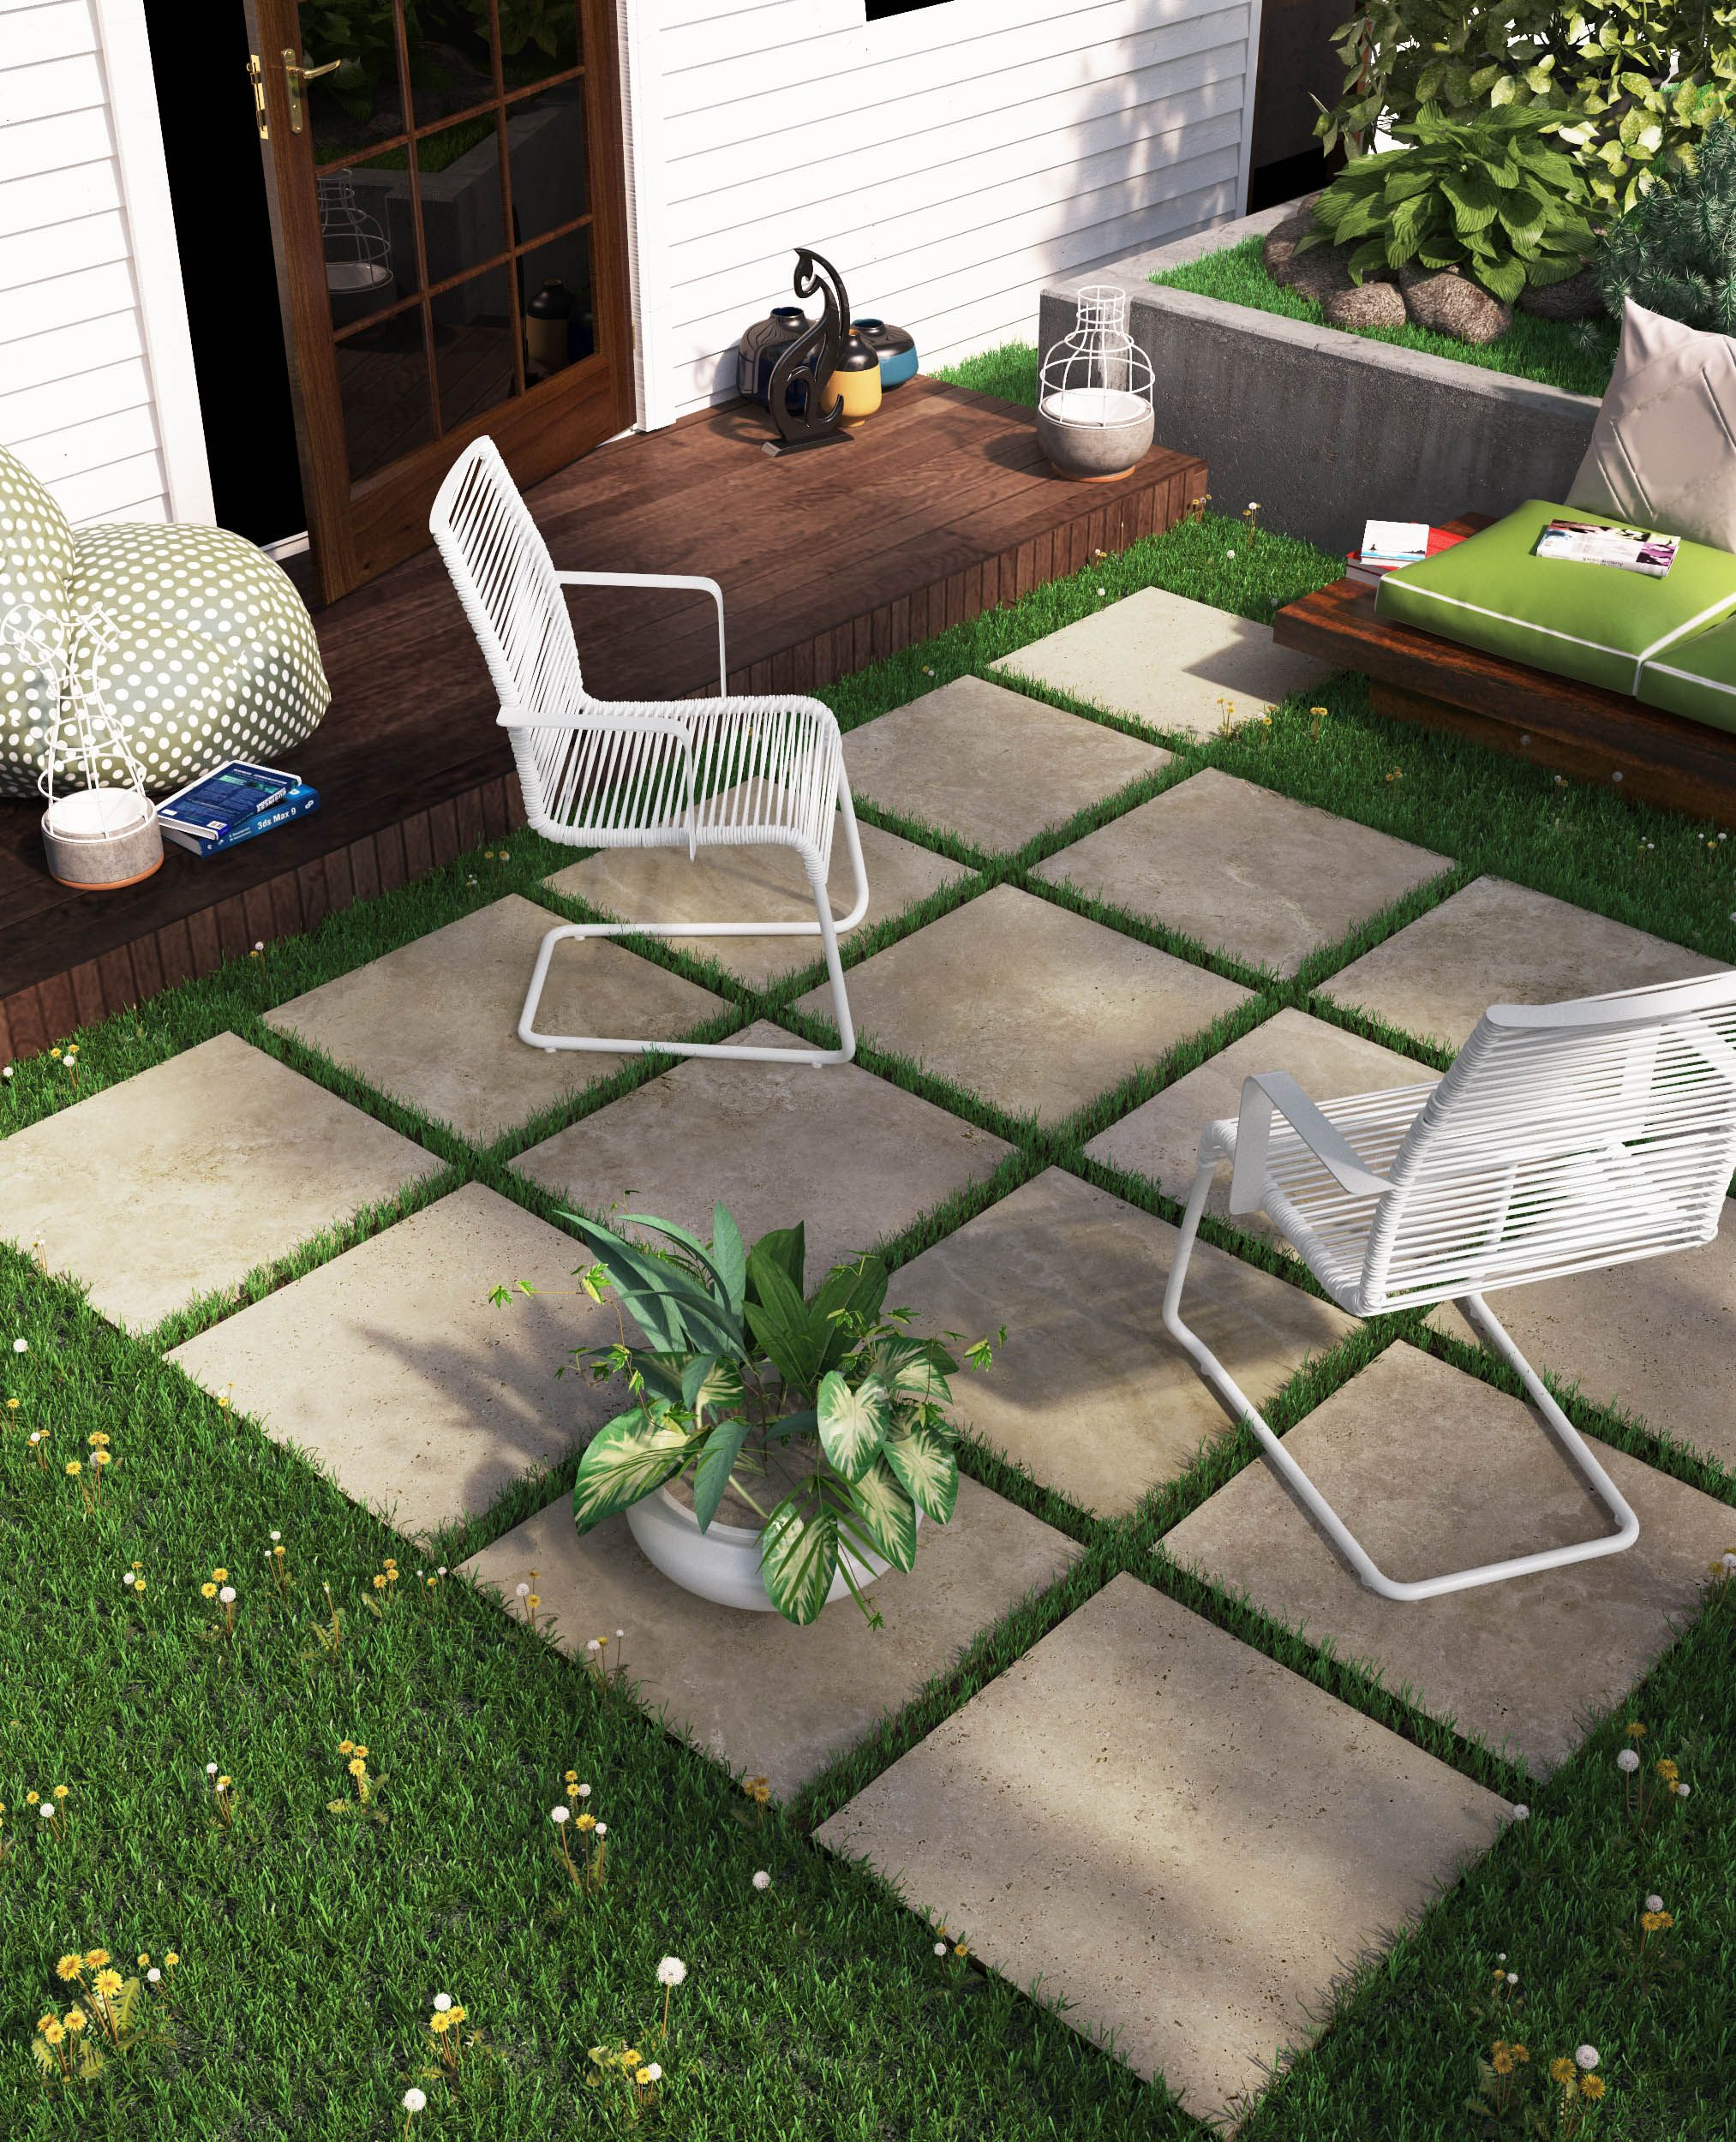 Outdoor Patio Sitting Area With Porcelain Stones